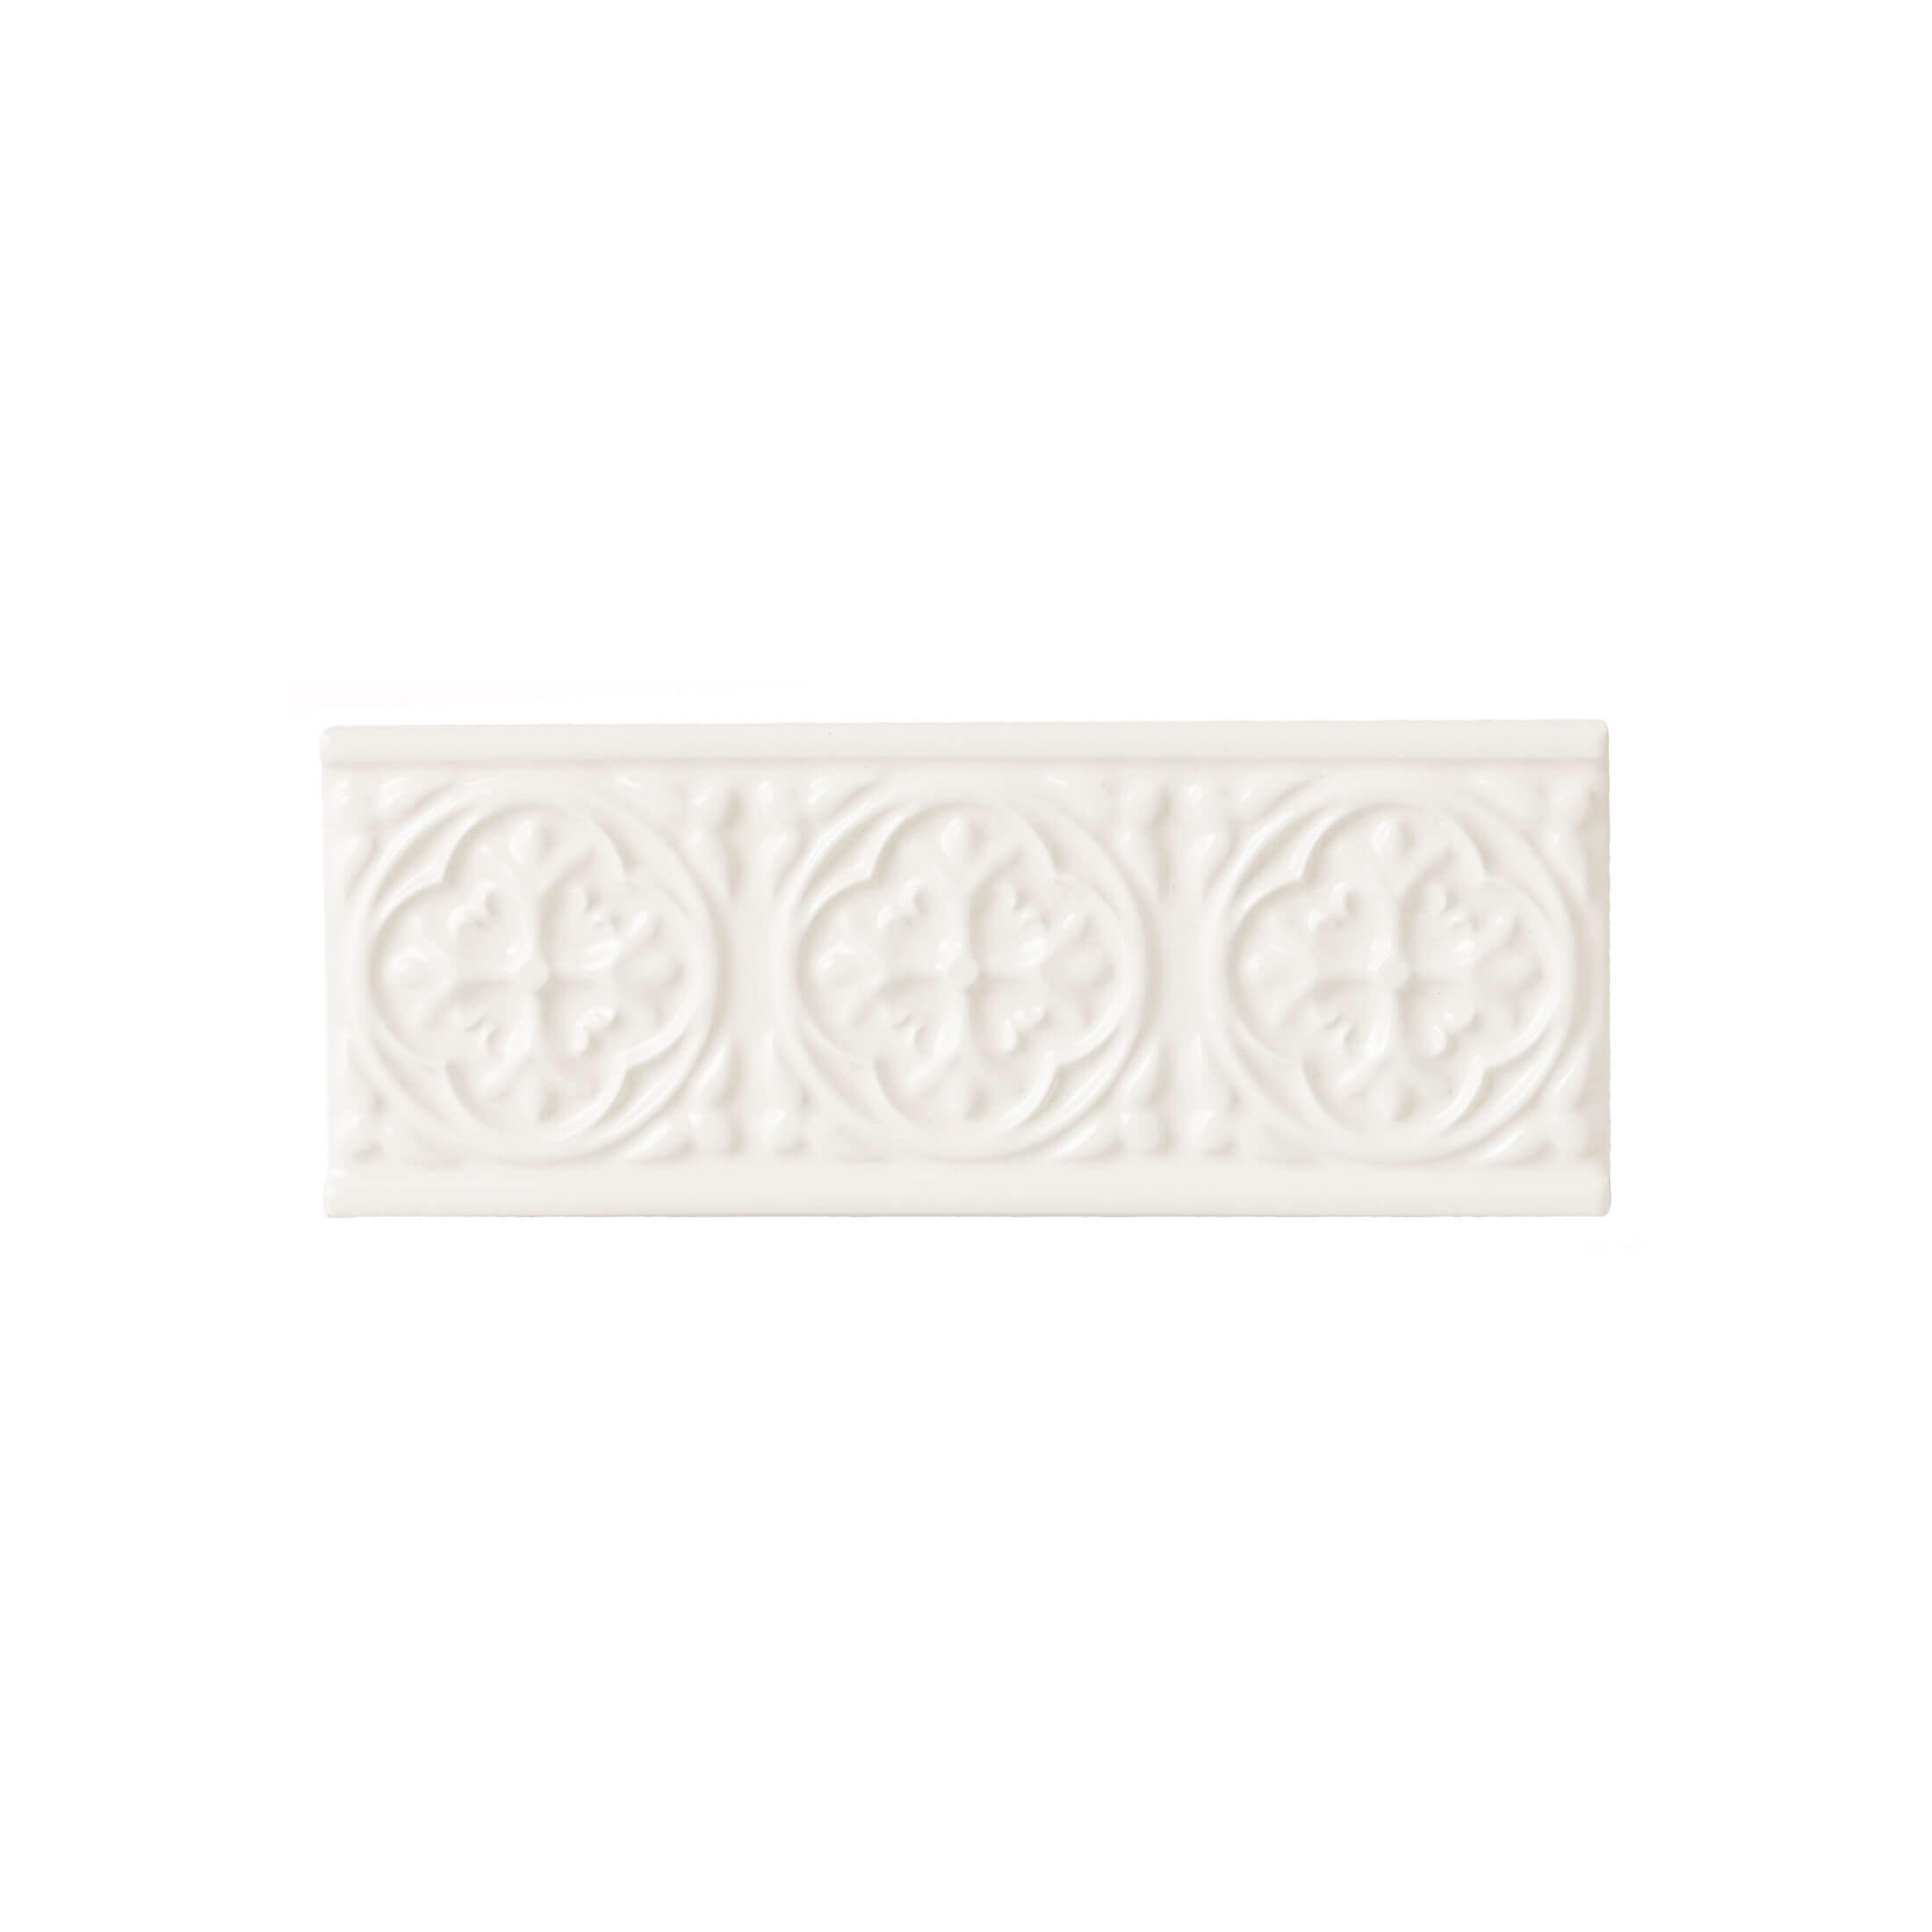 ADST4002 - RELIEVE PALM BEACH - 7.5 cm X 19.8 cm